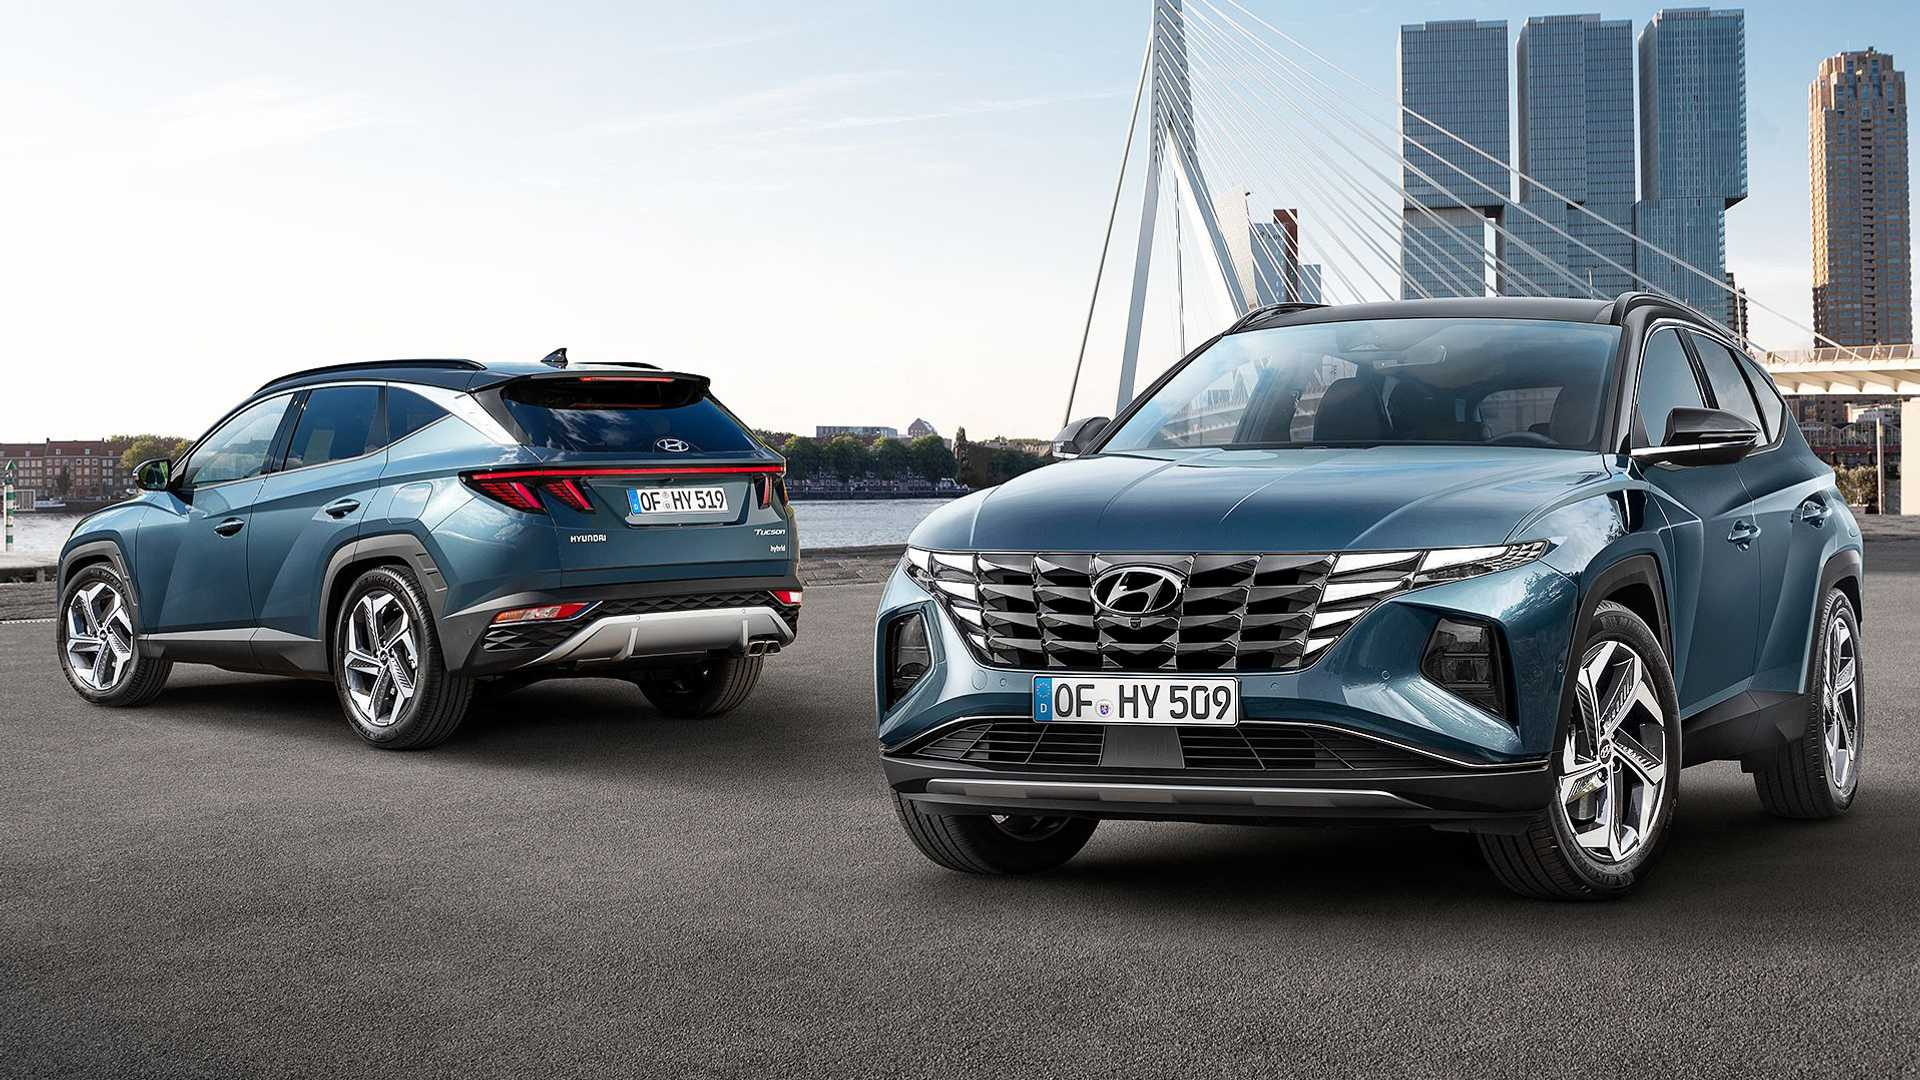 The South Korean automaker has hinted at the possibility of a power-packed Tuscon N crossover SUV joining the Tucson family in the future.